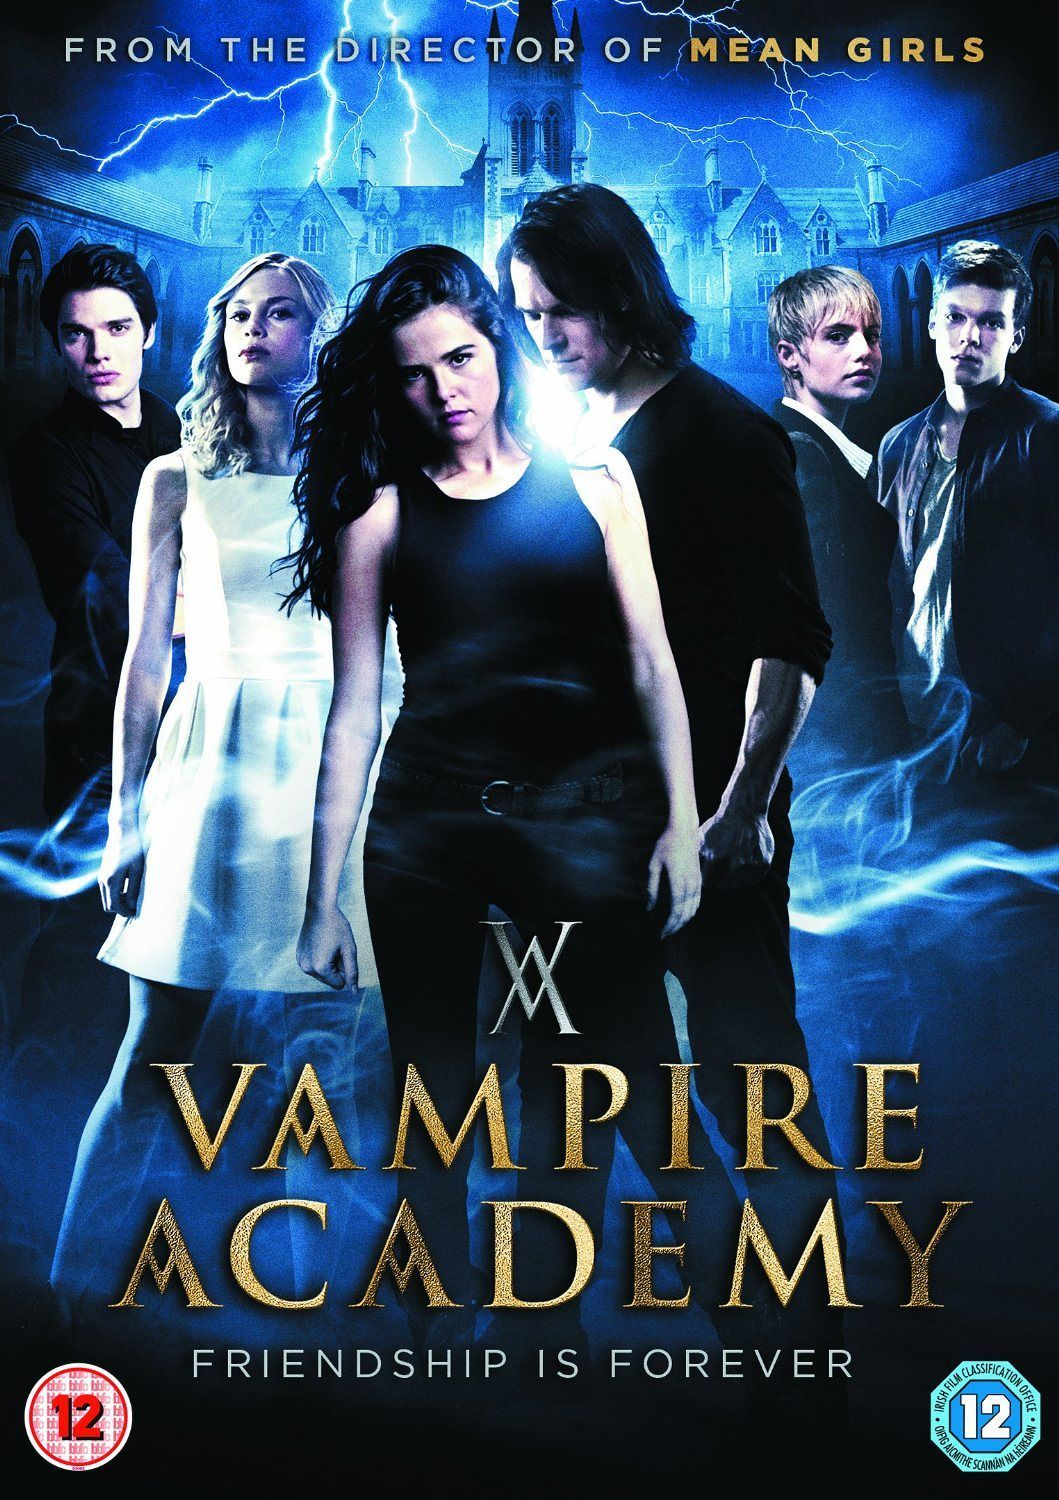 is there going to be a vampire academy 2